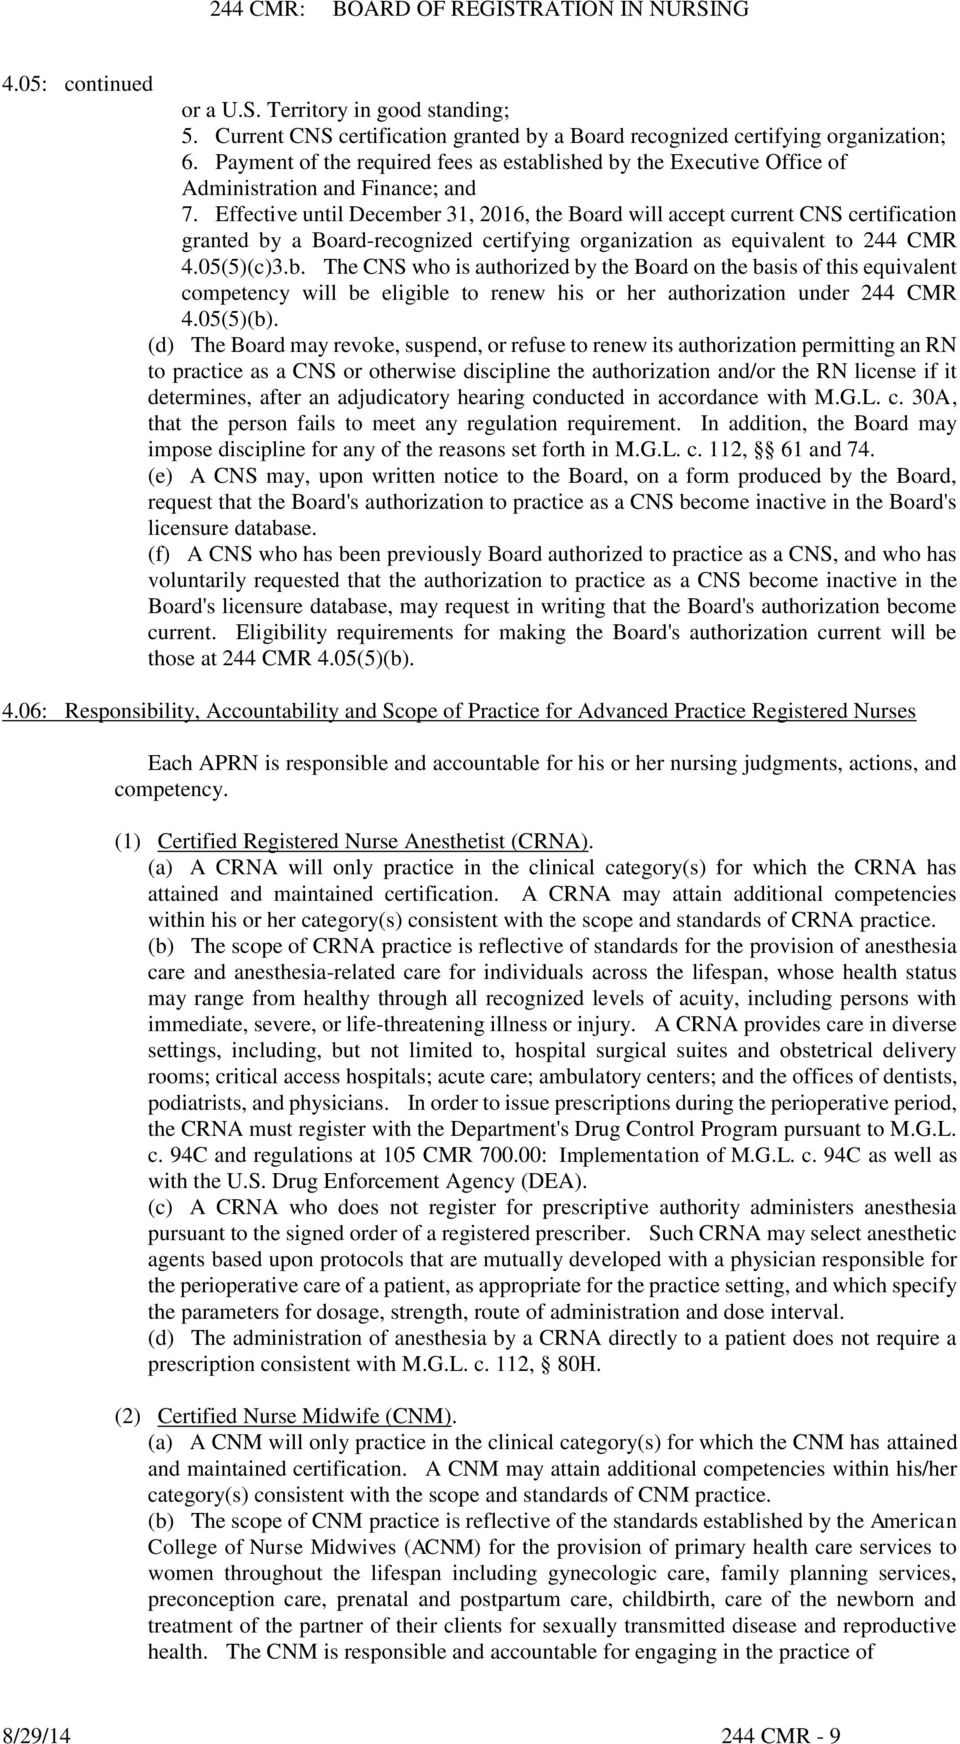 Effective until December 31, 2016, the Board will accept current CNS certification granted by a Board-recognized certifying organization as equivalent to 244 CMR 4.05(5)(c)3.b. The CNS who is authorized by the Board on the basis of this equivalent competency will be eligible to renew his or her authorization under 244 CMR 4.